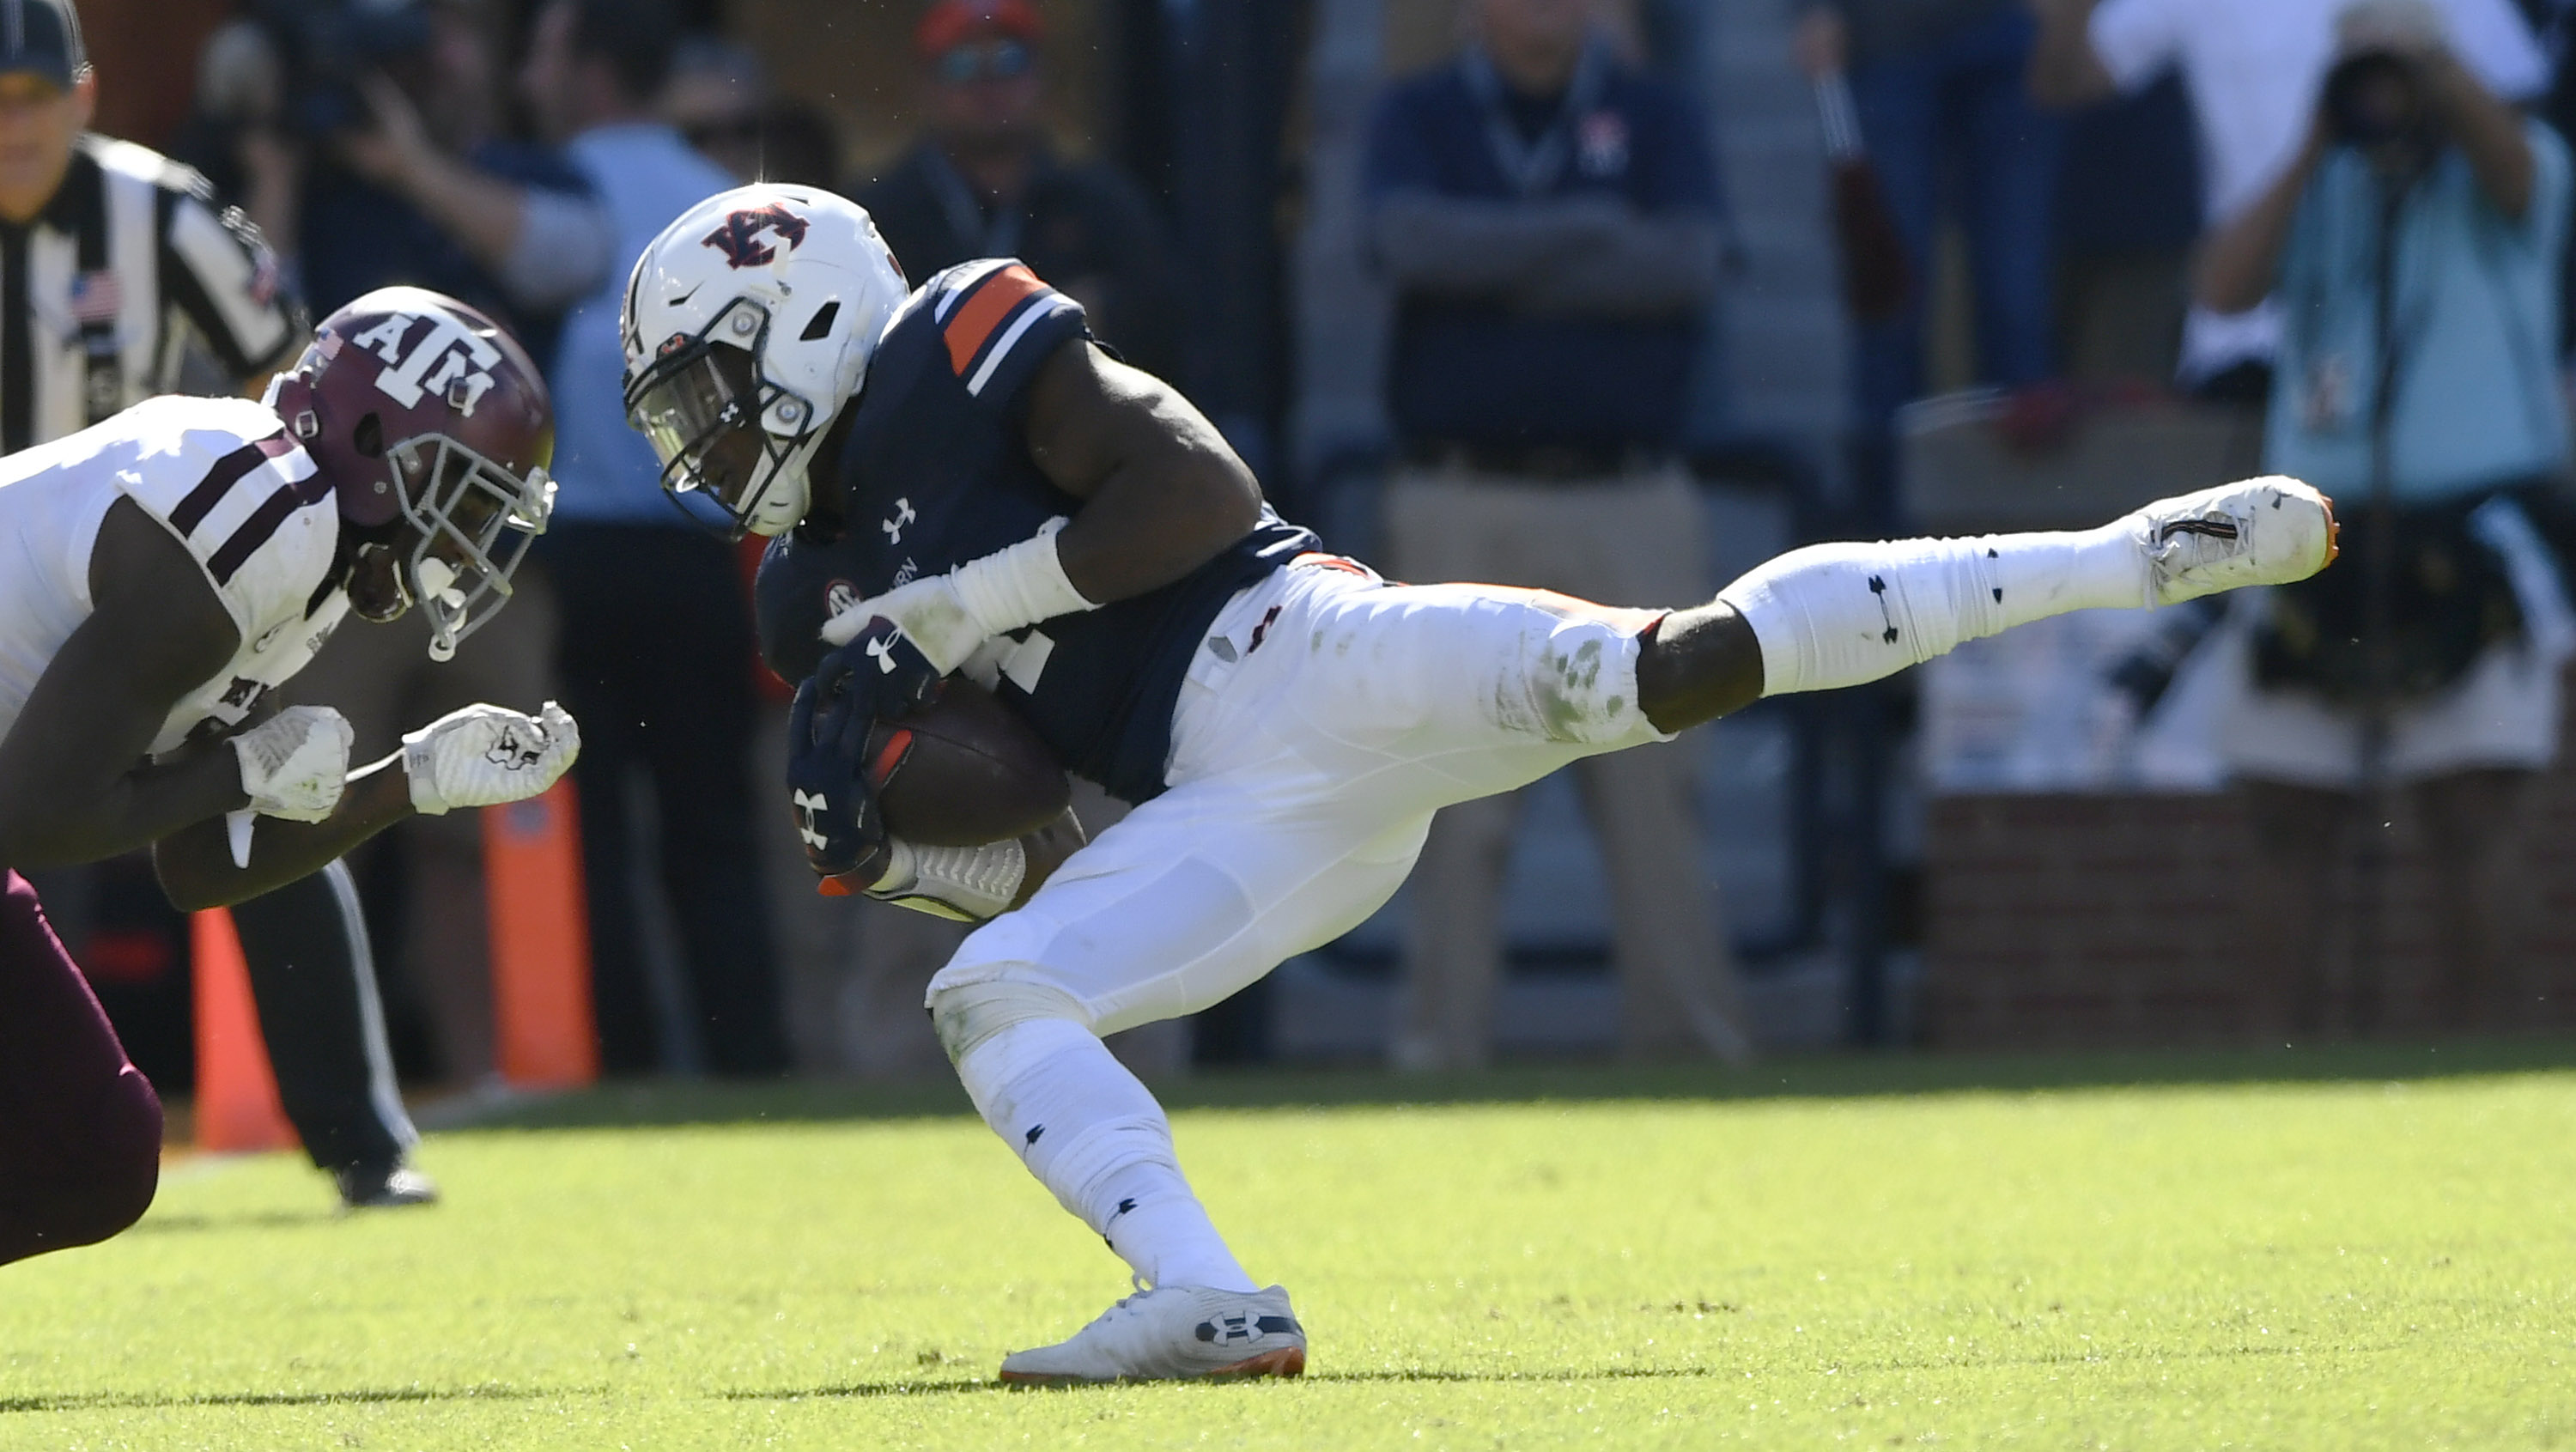 Igbinoghene's interception sparks Auburn win over Texas A&M